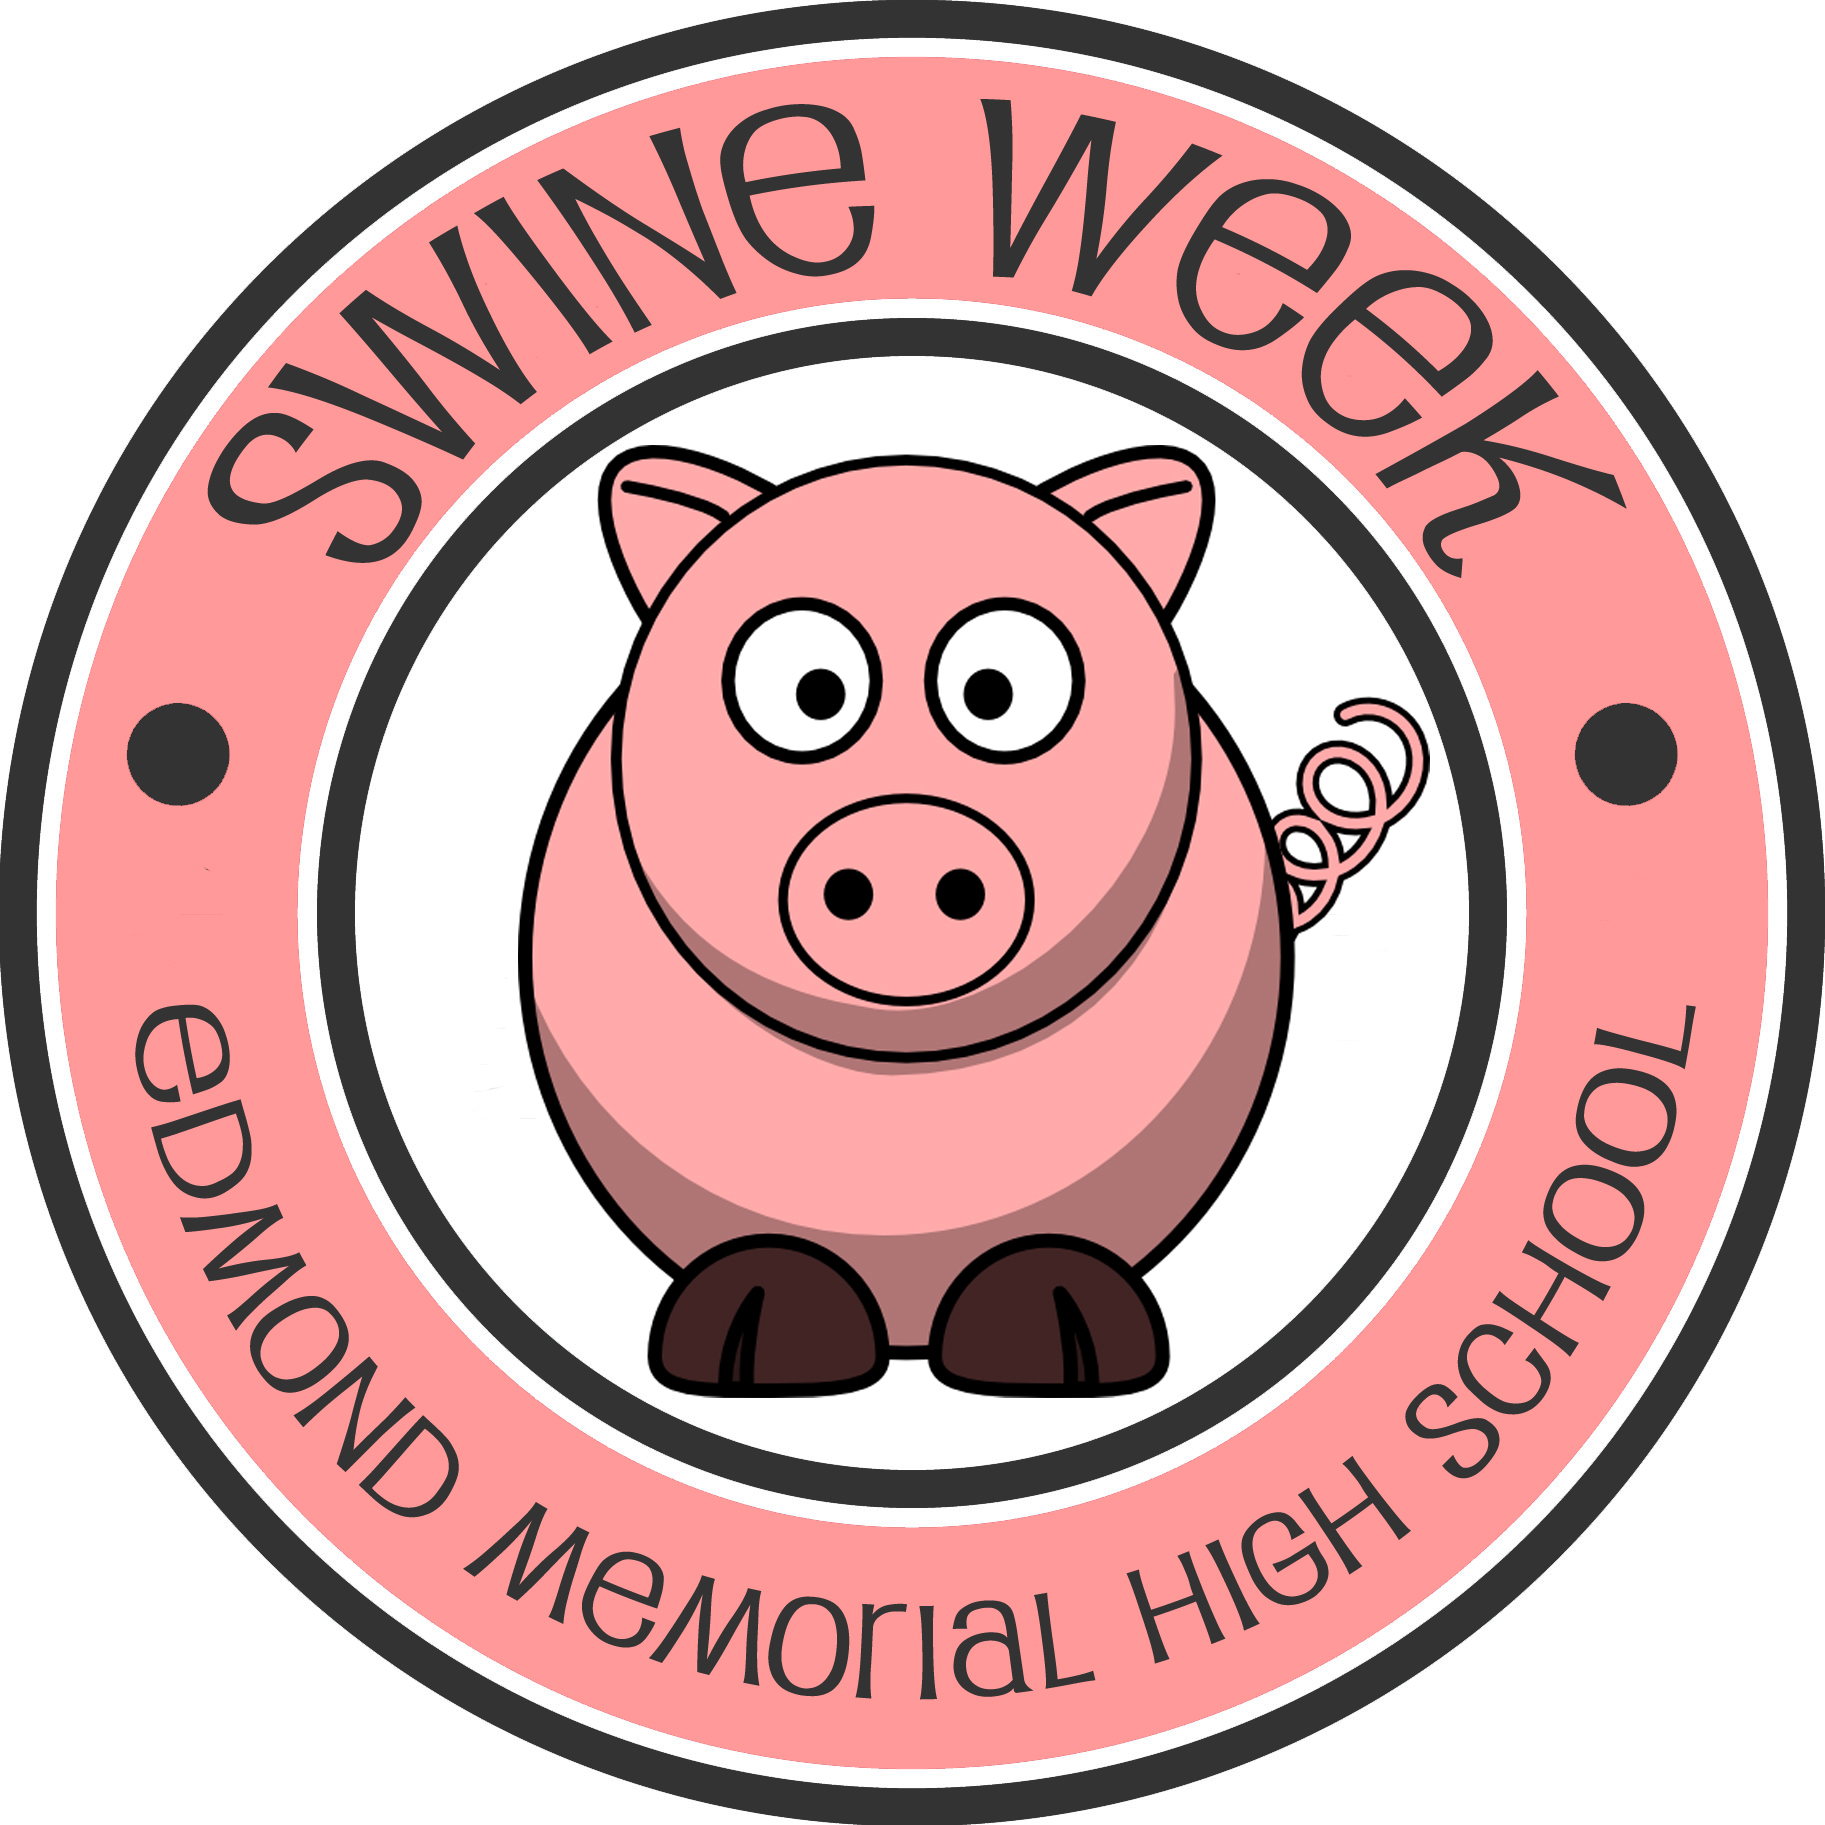 Swine Week Decorative Logo